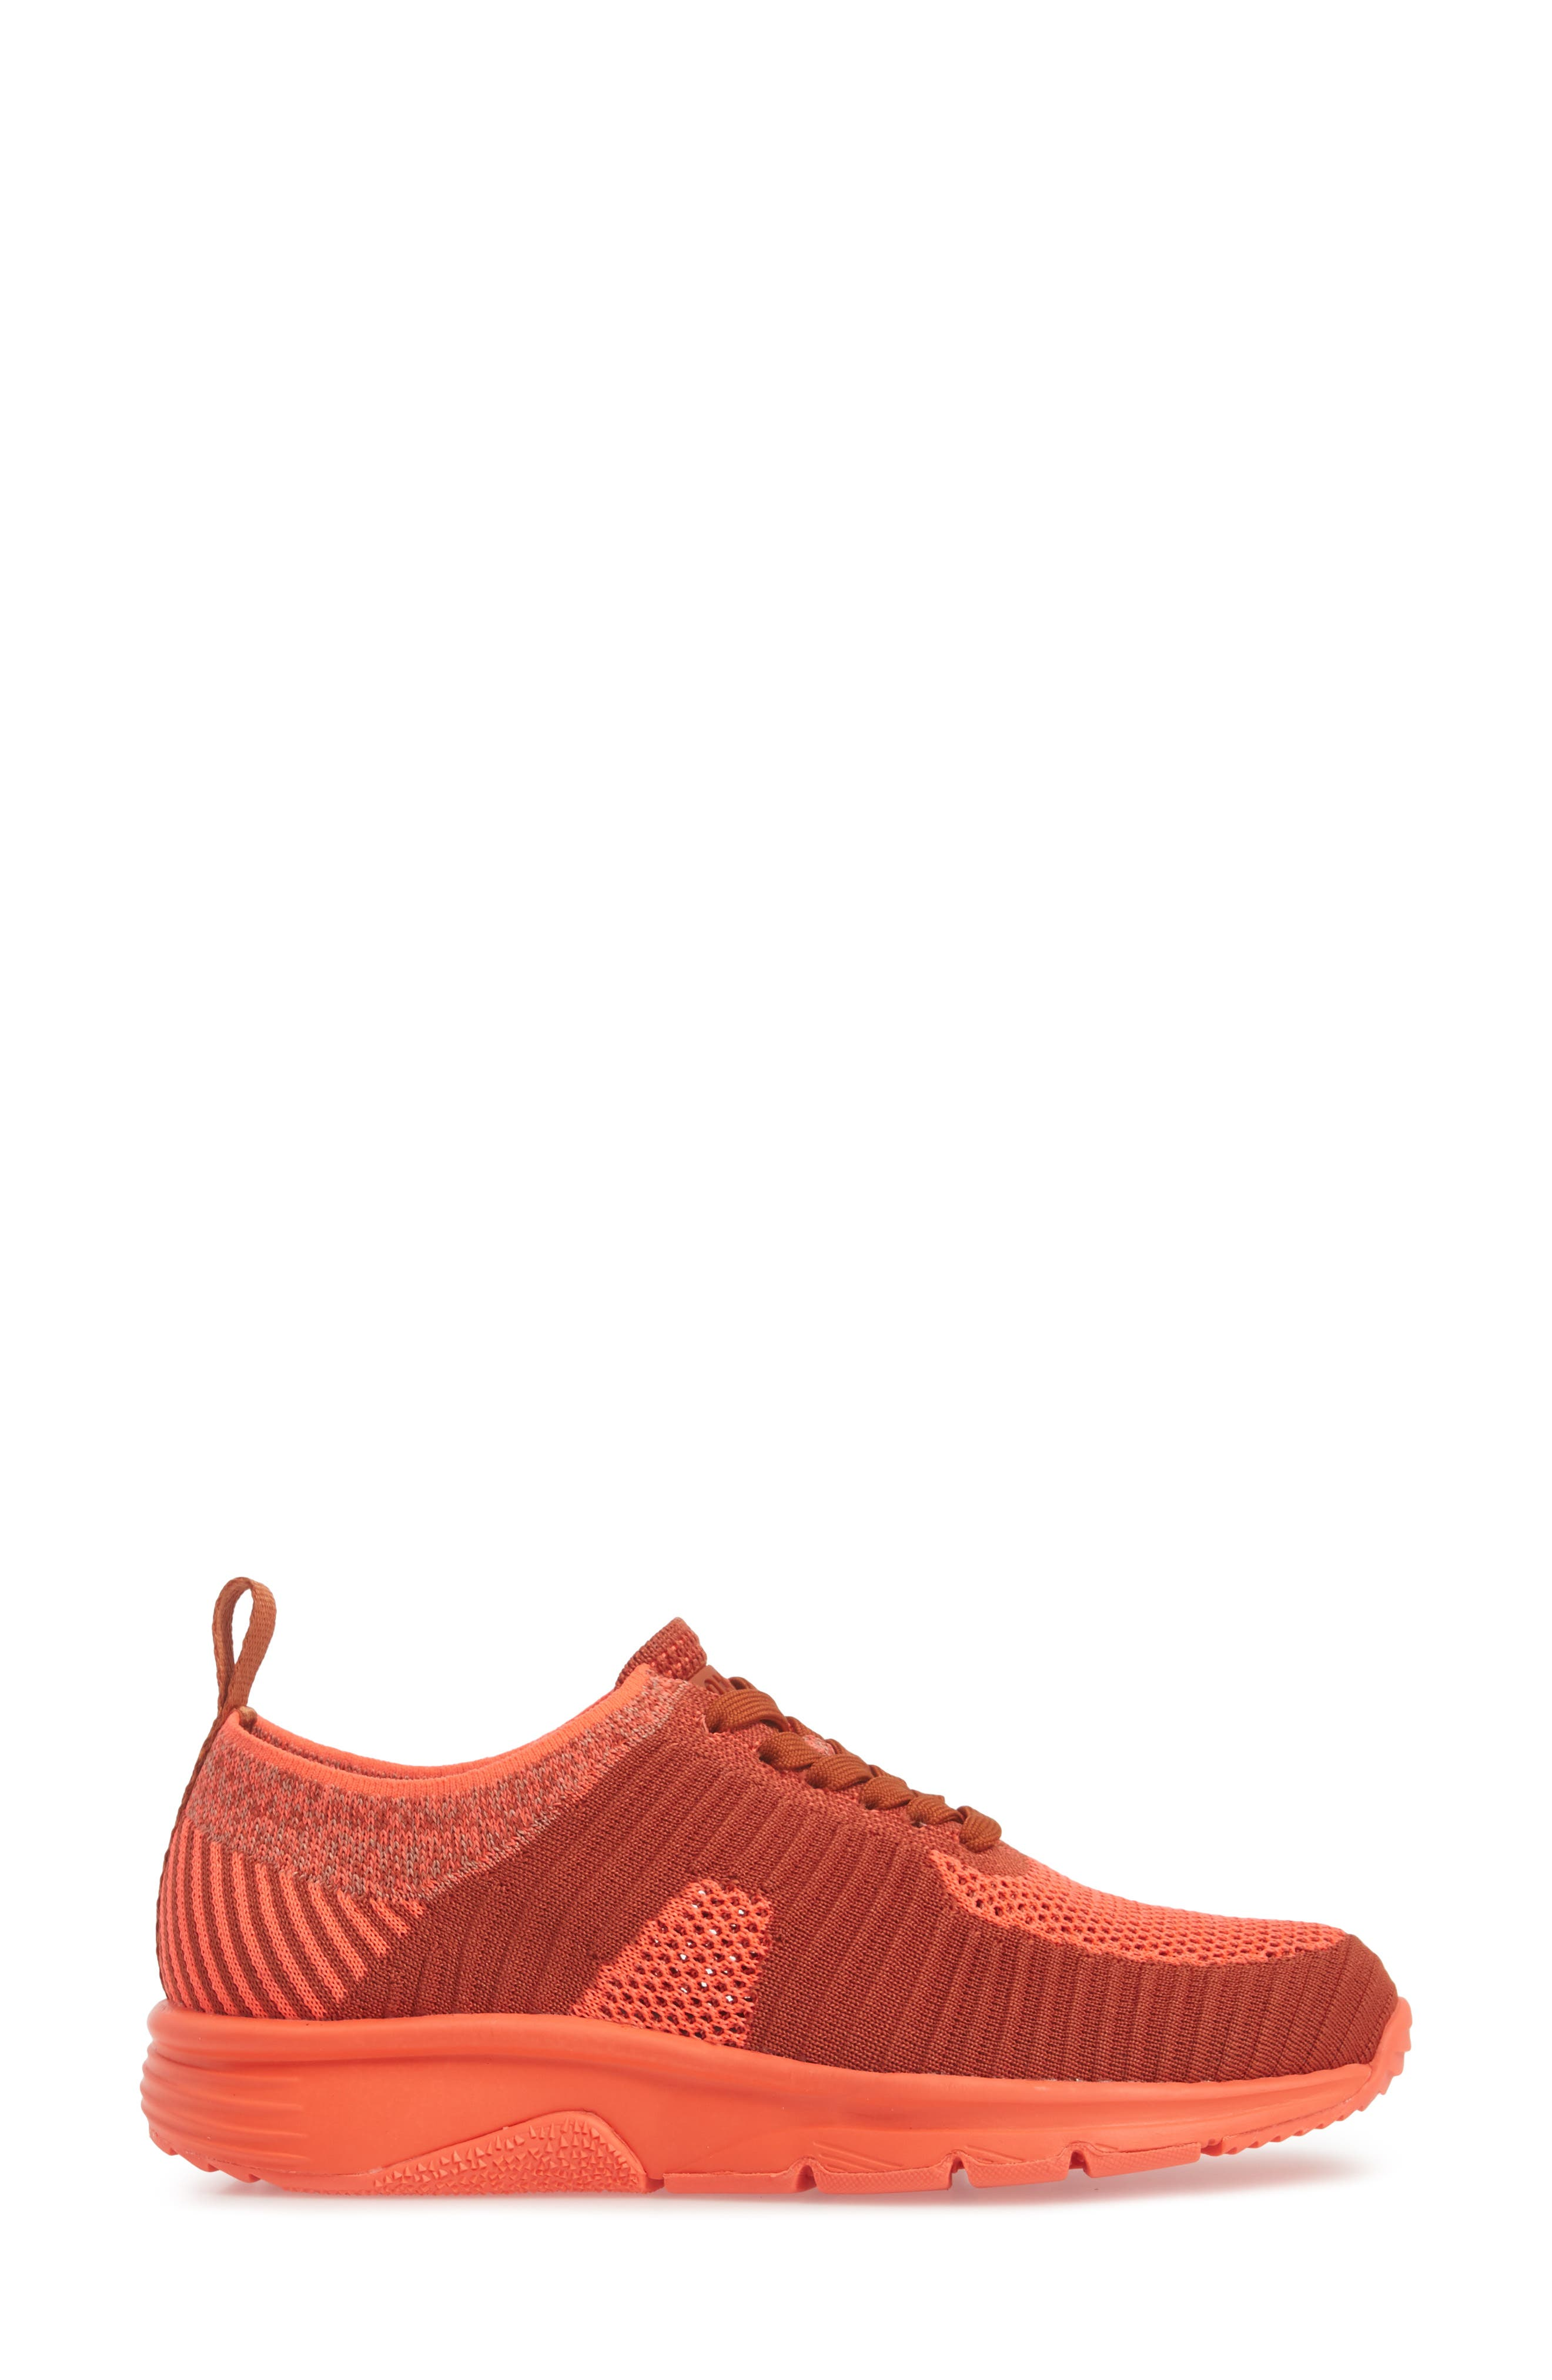 Drift Knit Sneaker,                             Alternate thumbnail 3, color,                             RED - ASSORTED FABRIC